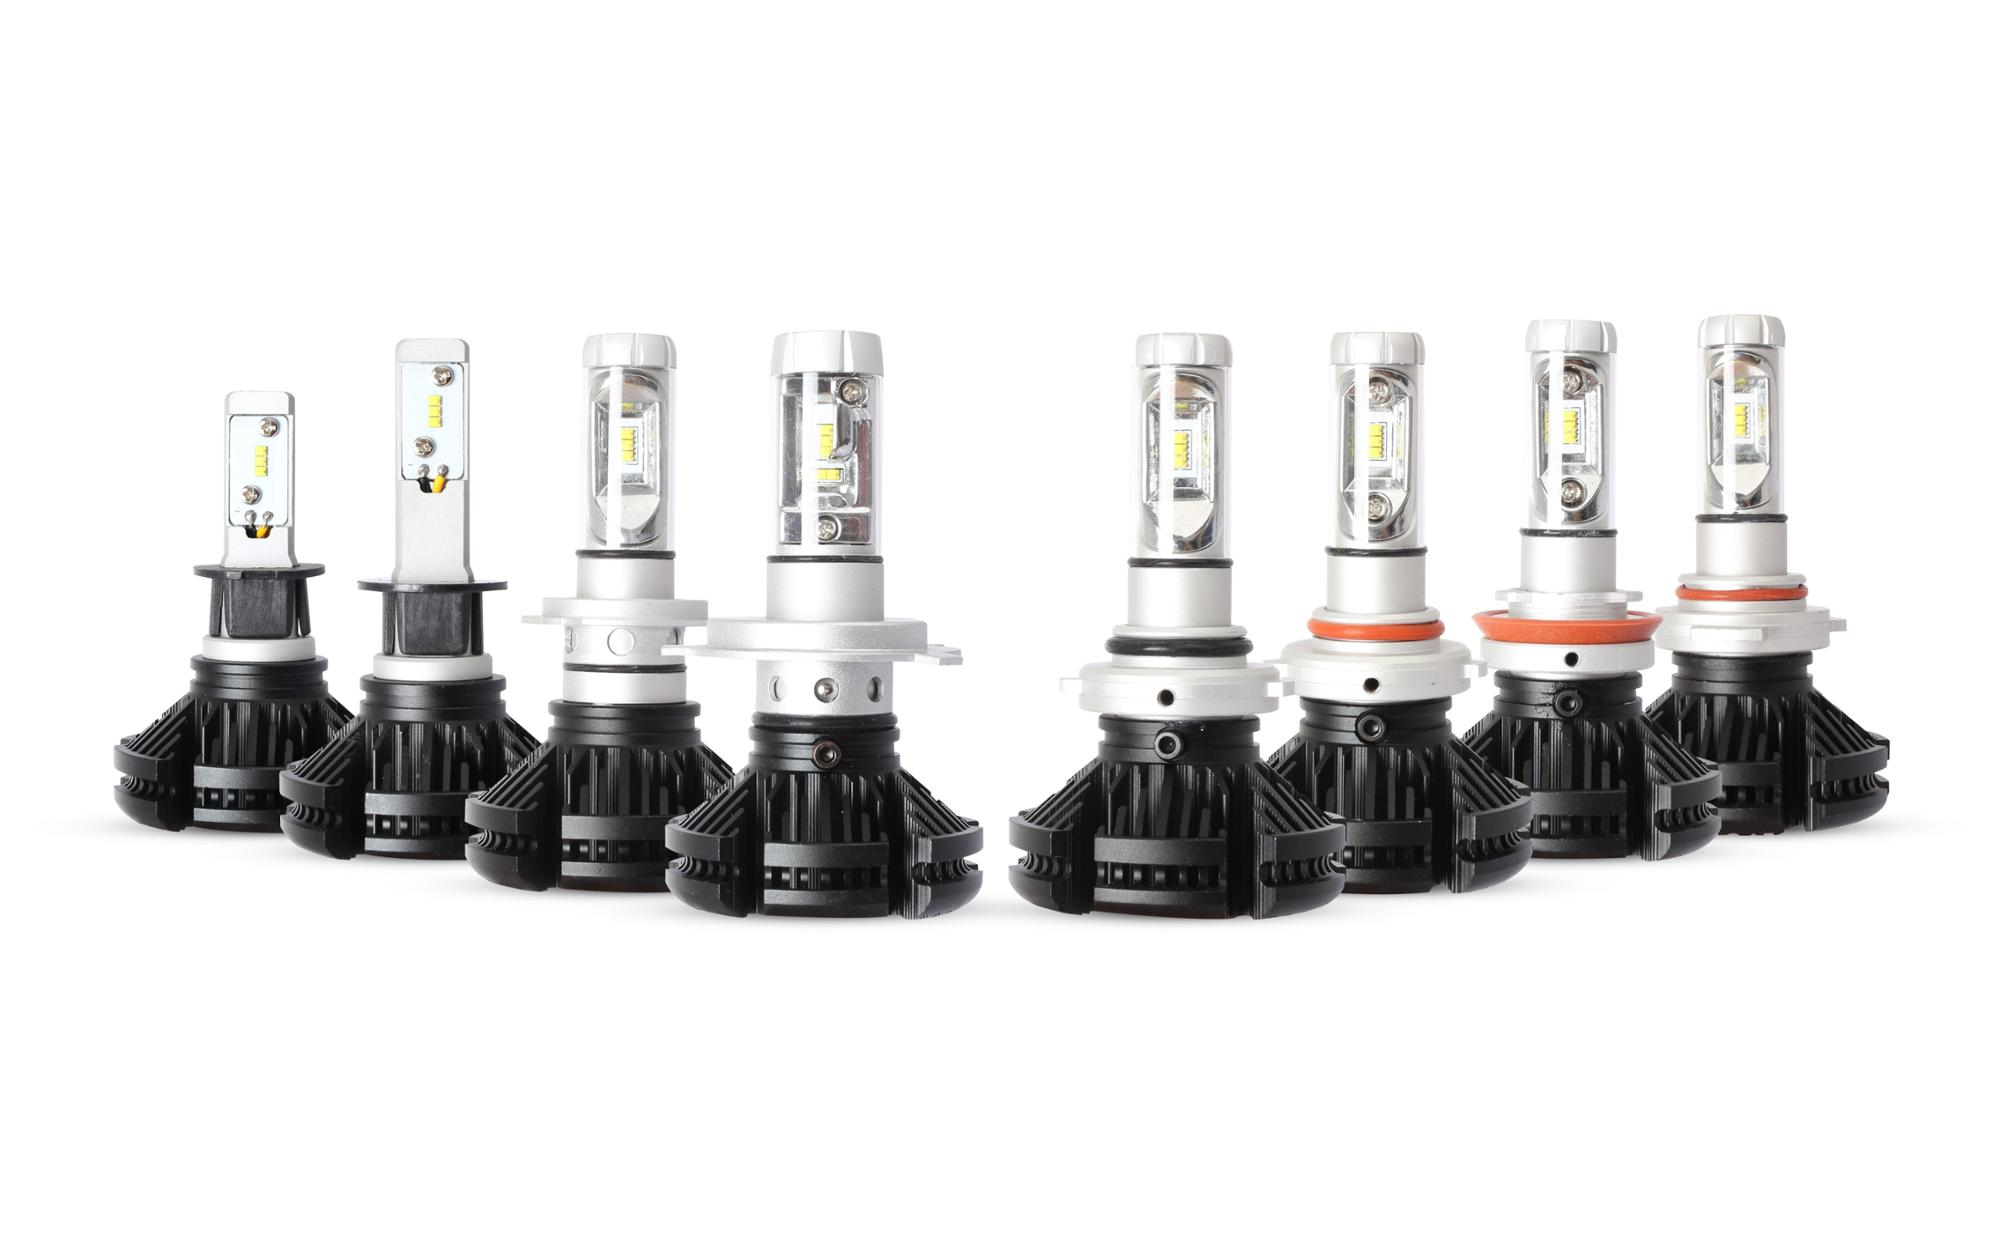 X3 led headlight bulbs